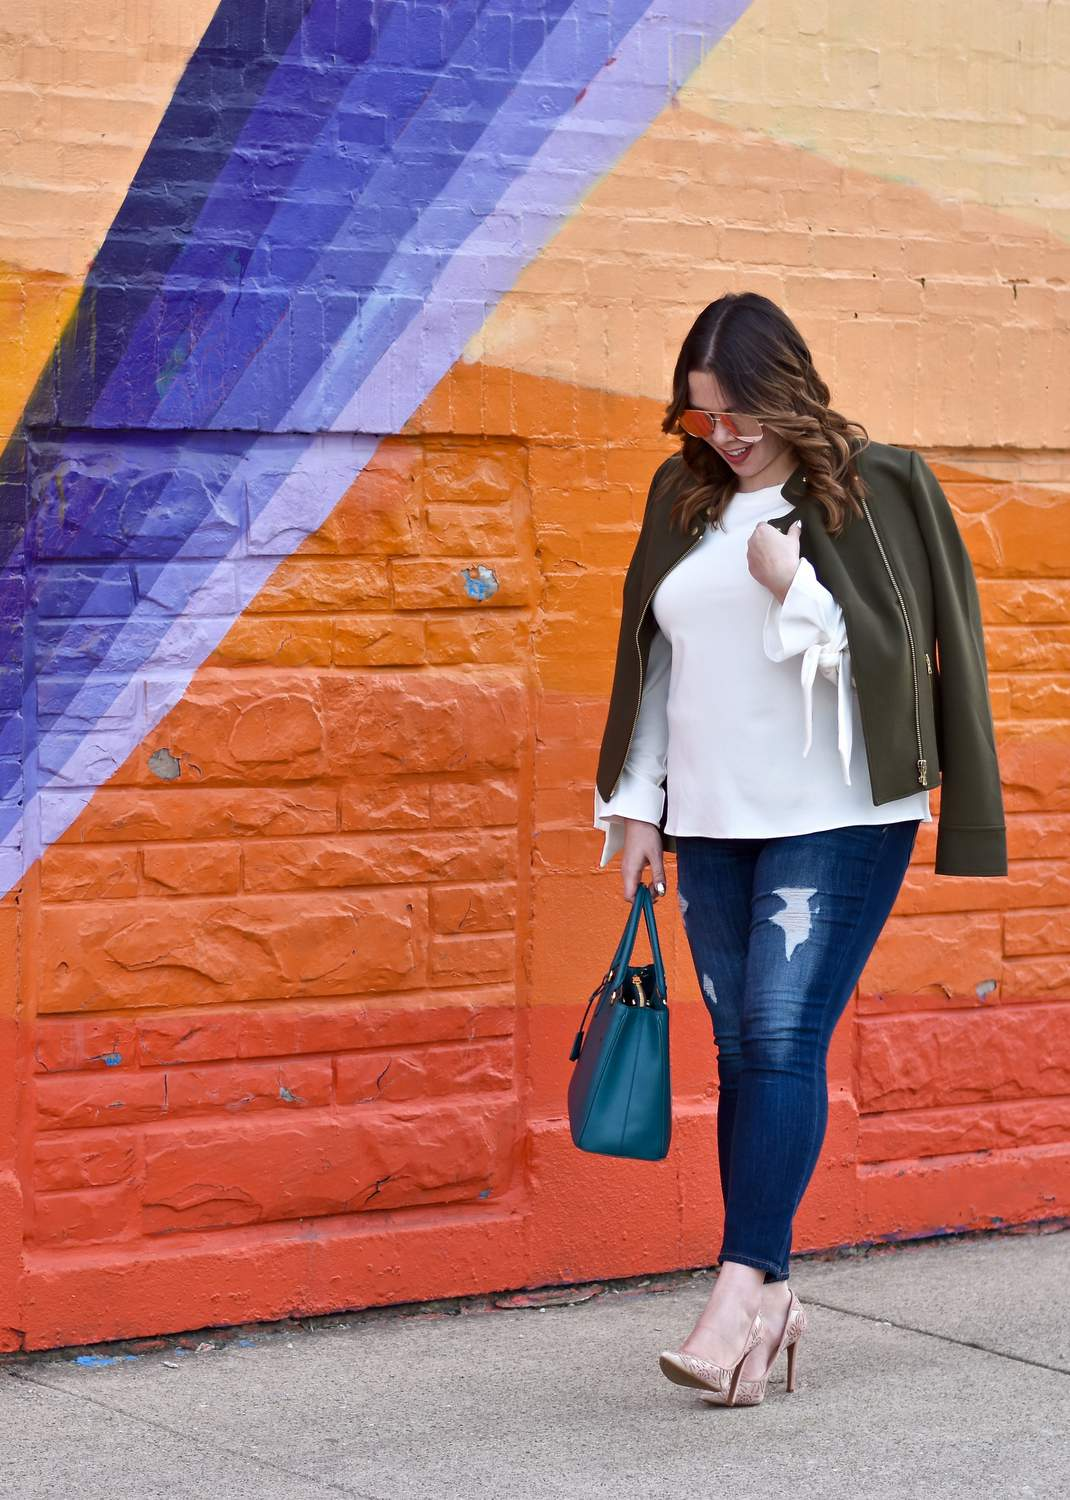 Plus size blogger spotlight- Fashion love letters